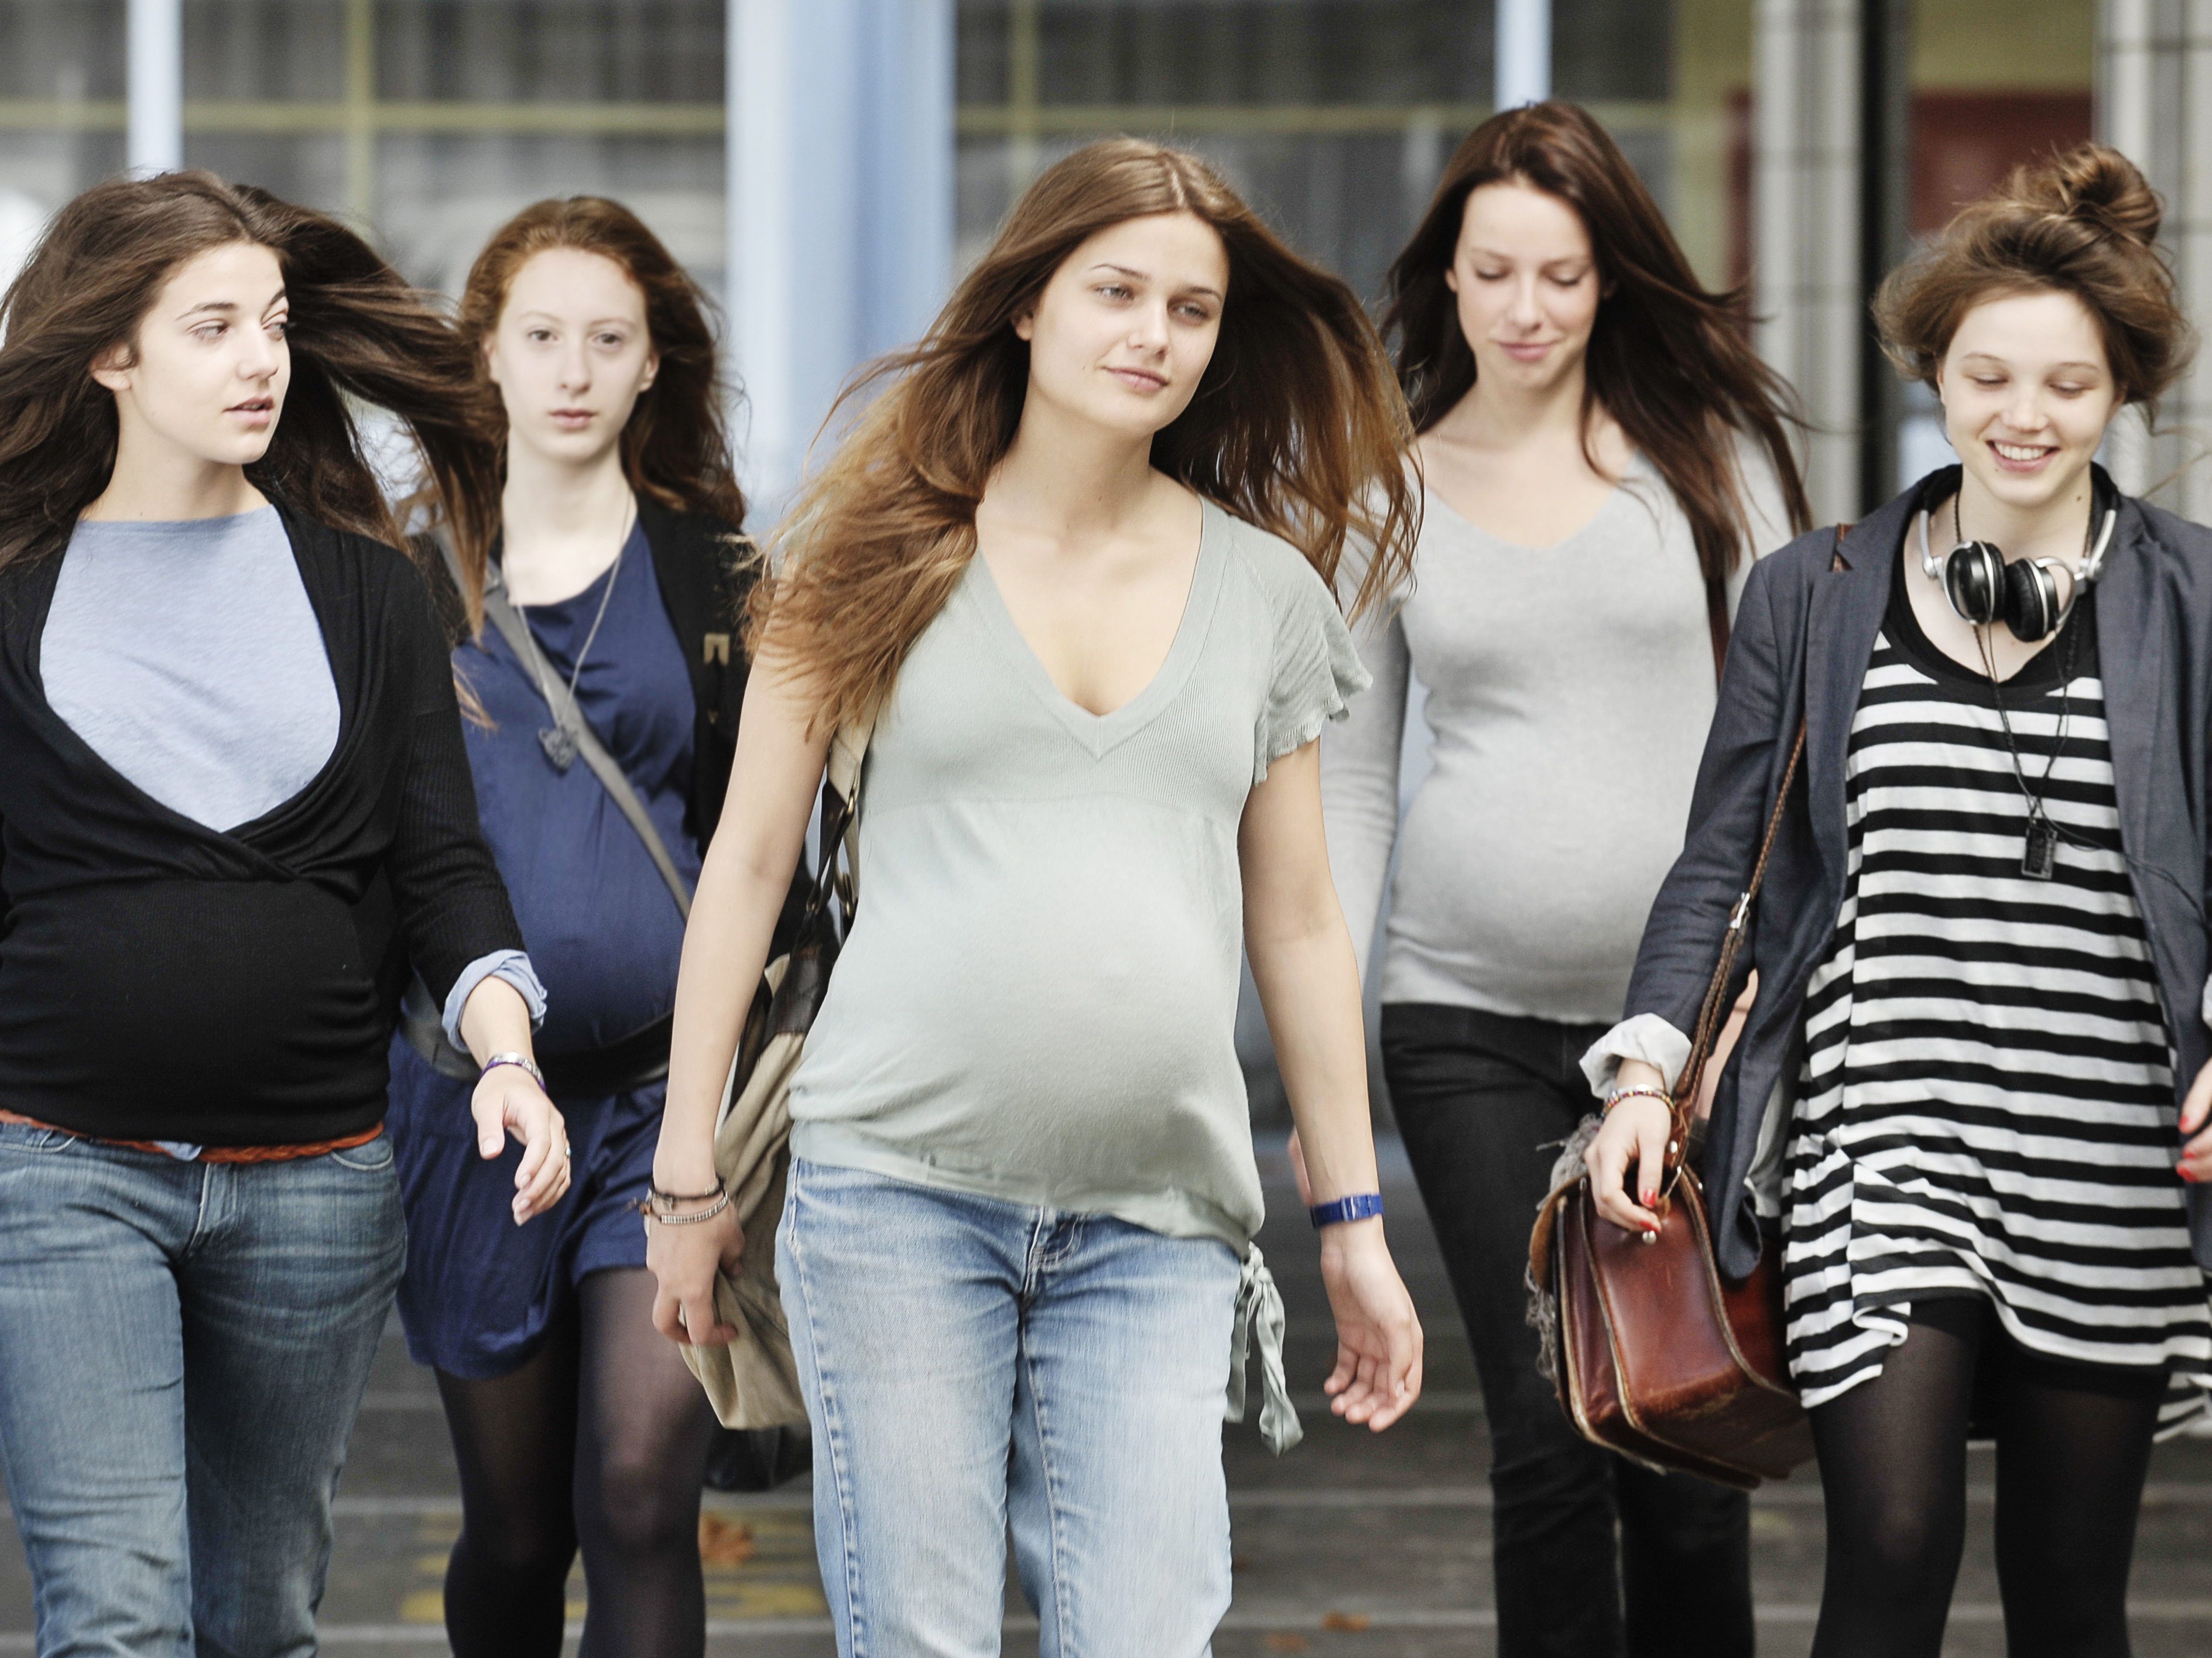 Pregnant Teenagers In Middle School